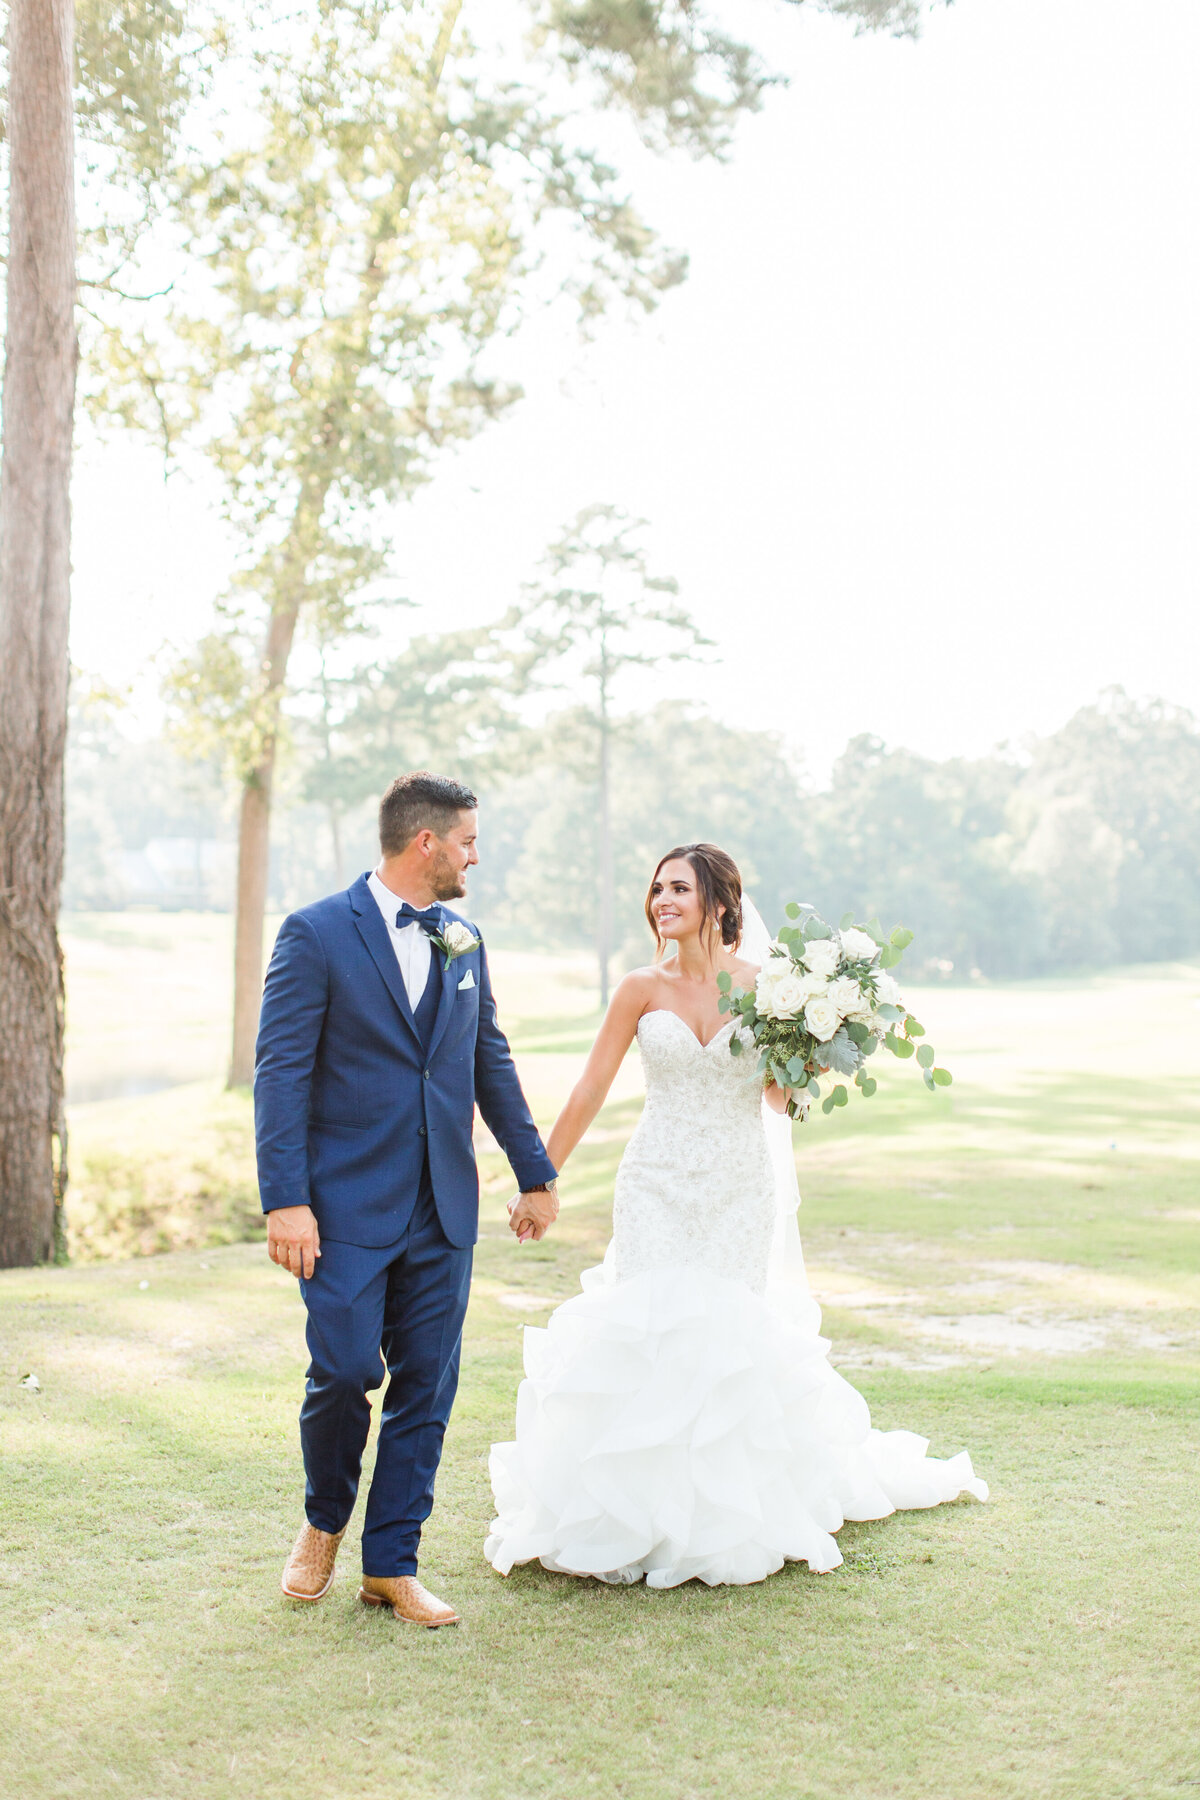 Renee Lorio Photography South Louisiana Wedding Engagement Light Airy Portrait Photographer Photos Southern Clean Colorful1677777